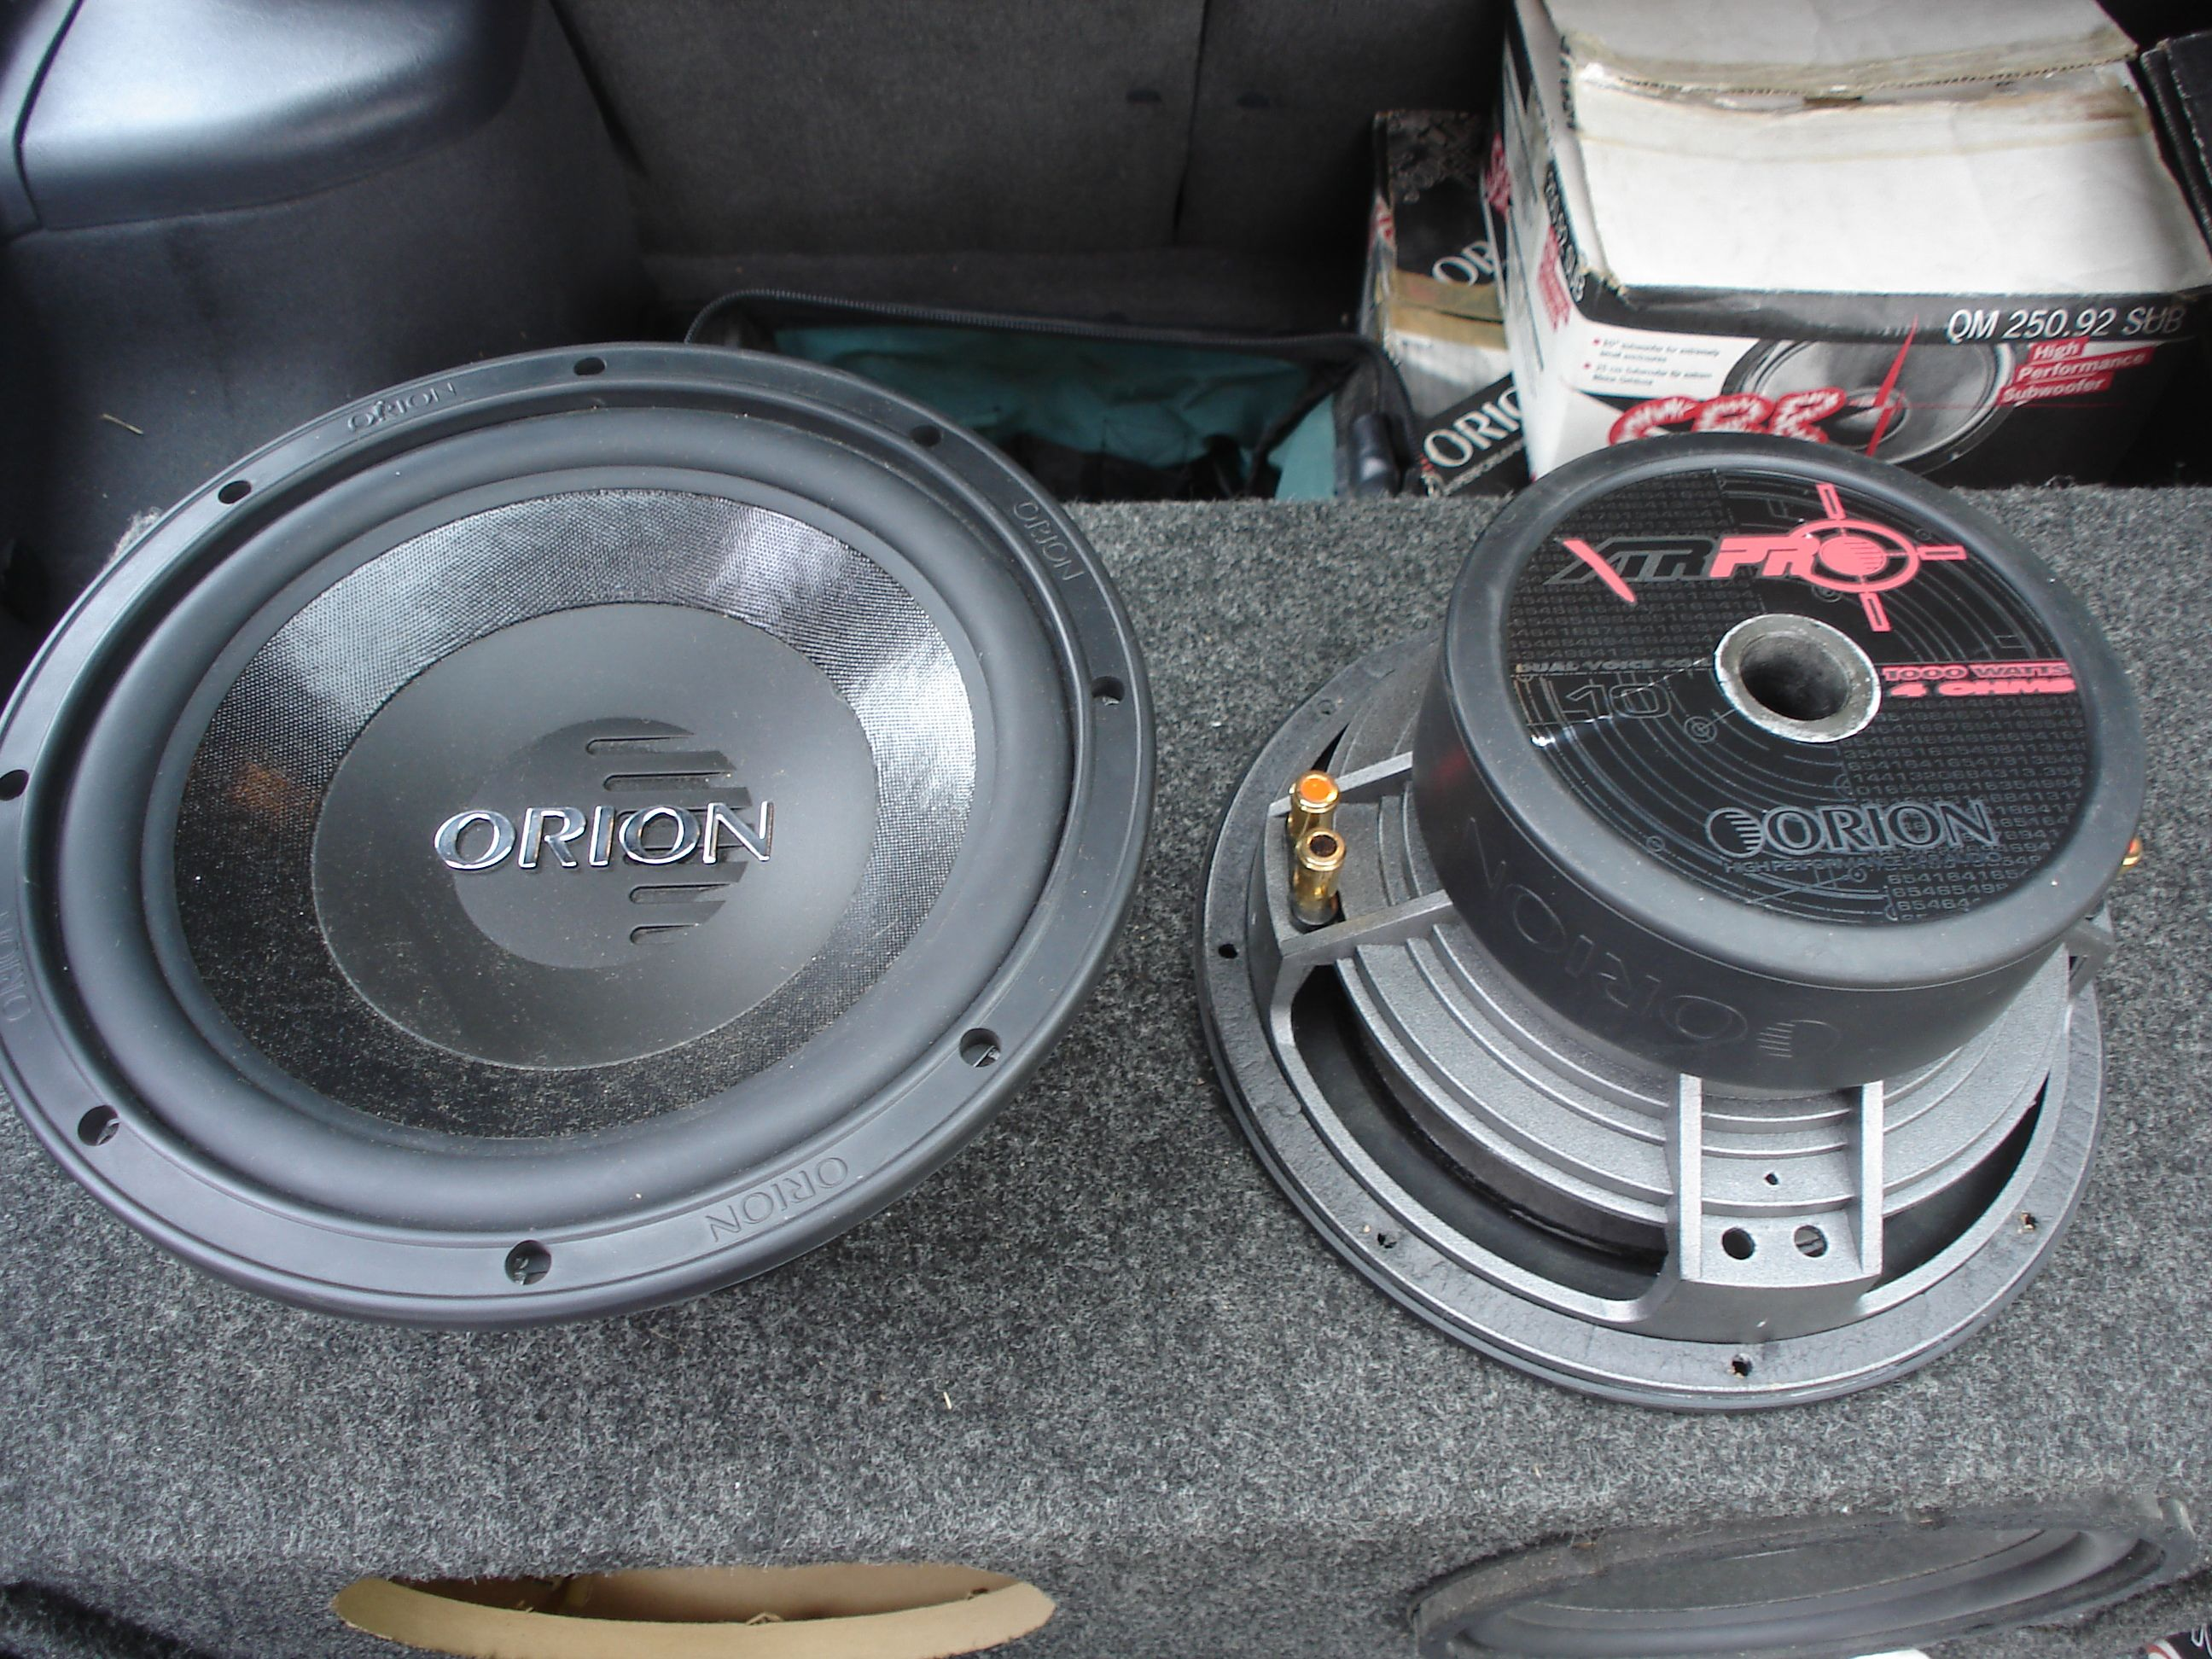 fs  shool orion xtr pro sony xplod rockford subs  boxes